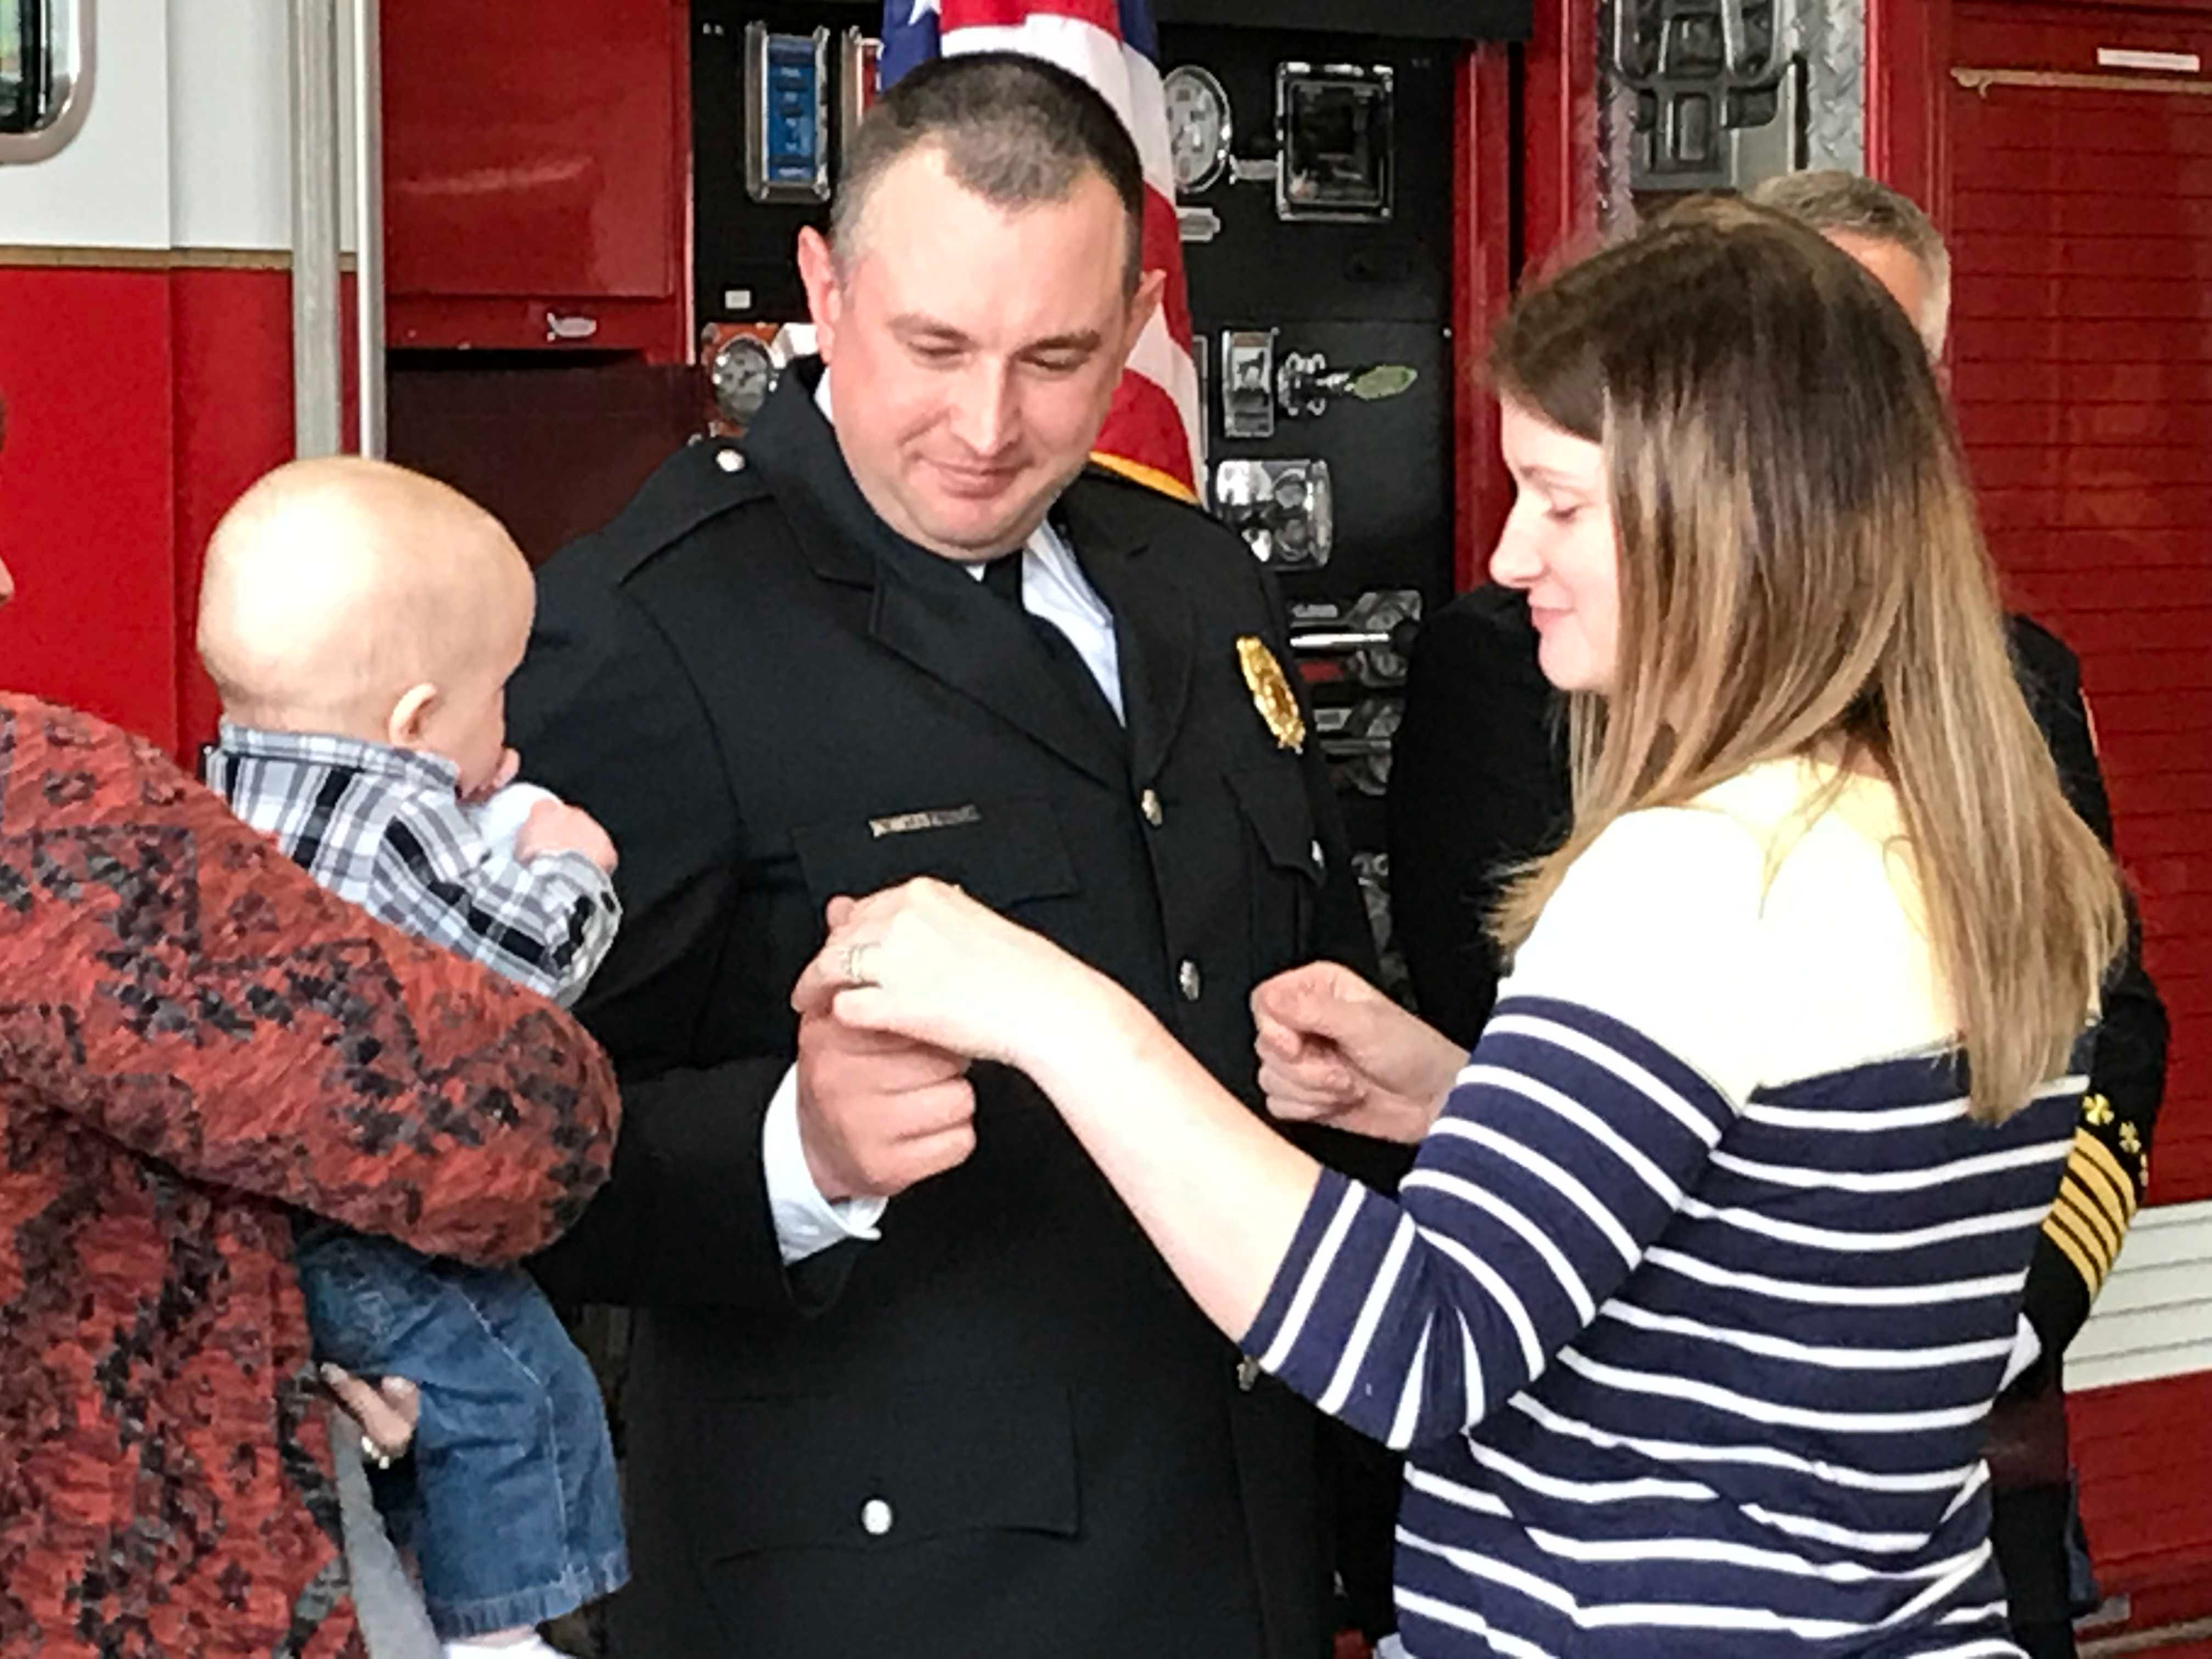 New Chillicothe Fire Lt. Nick Mathias smiles as his wife prepares to affix another new pin to his jacket during a special promotion swearing in and pinning ceremony on Friday, April 26, 2019.